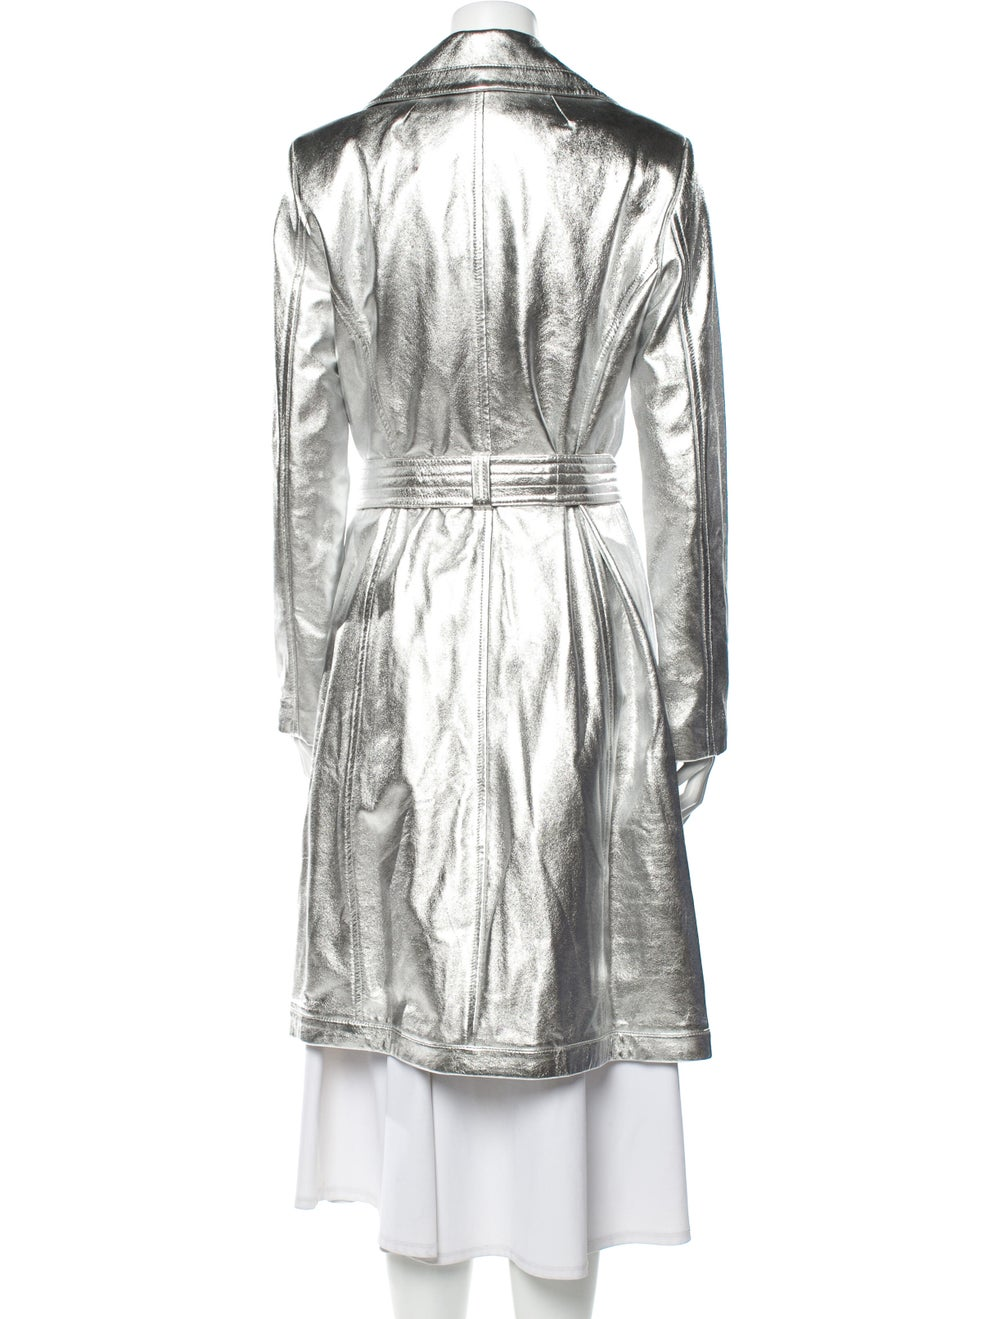 A.l.c. Lamb Leather Trench Coat Silver - image 3